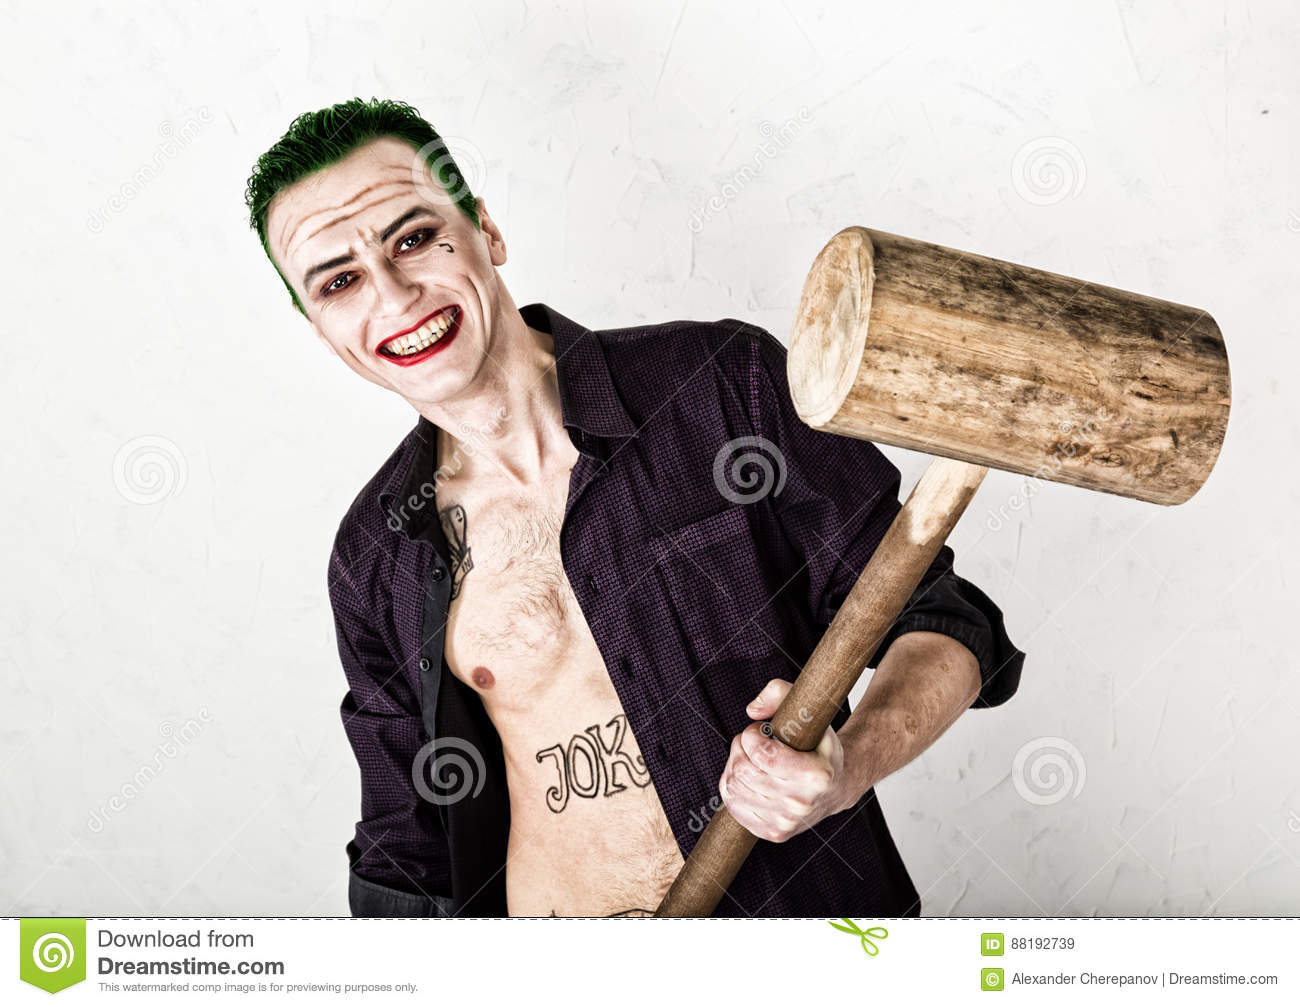 Verrassend Guy With Crazy Joker Face, Green Hair And Idiotic Smile. Carnaval TI-71